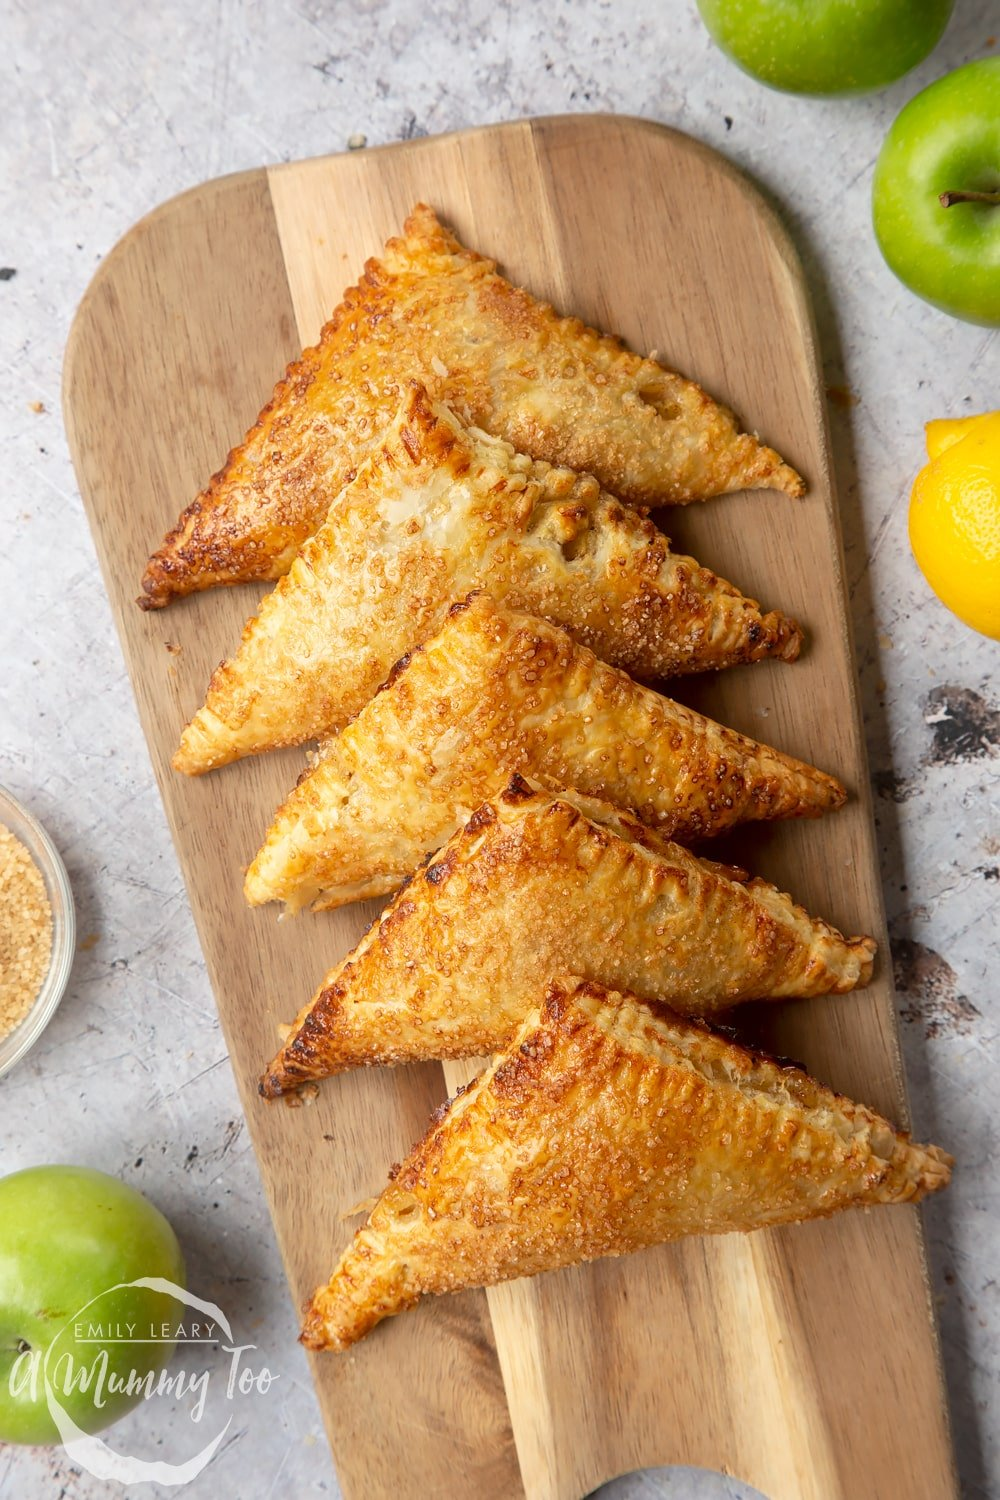 Overhead shot of an Apple cinnamon turnovers served on a wooden plate with a mummy too logo in the lower-left corner